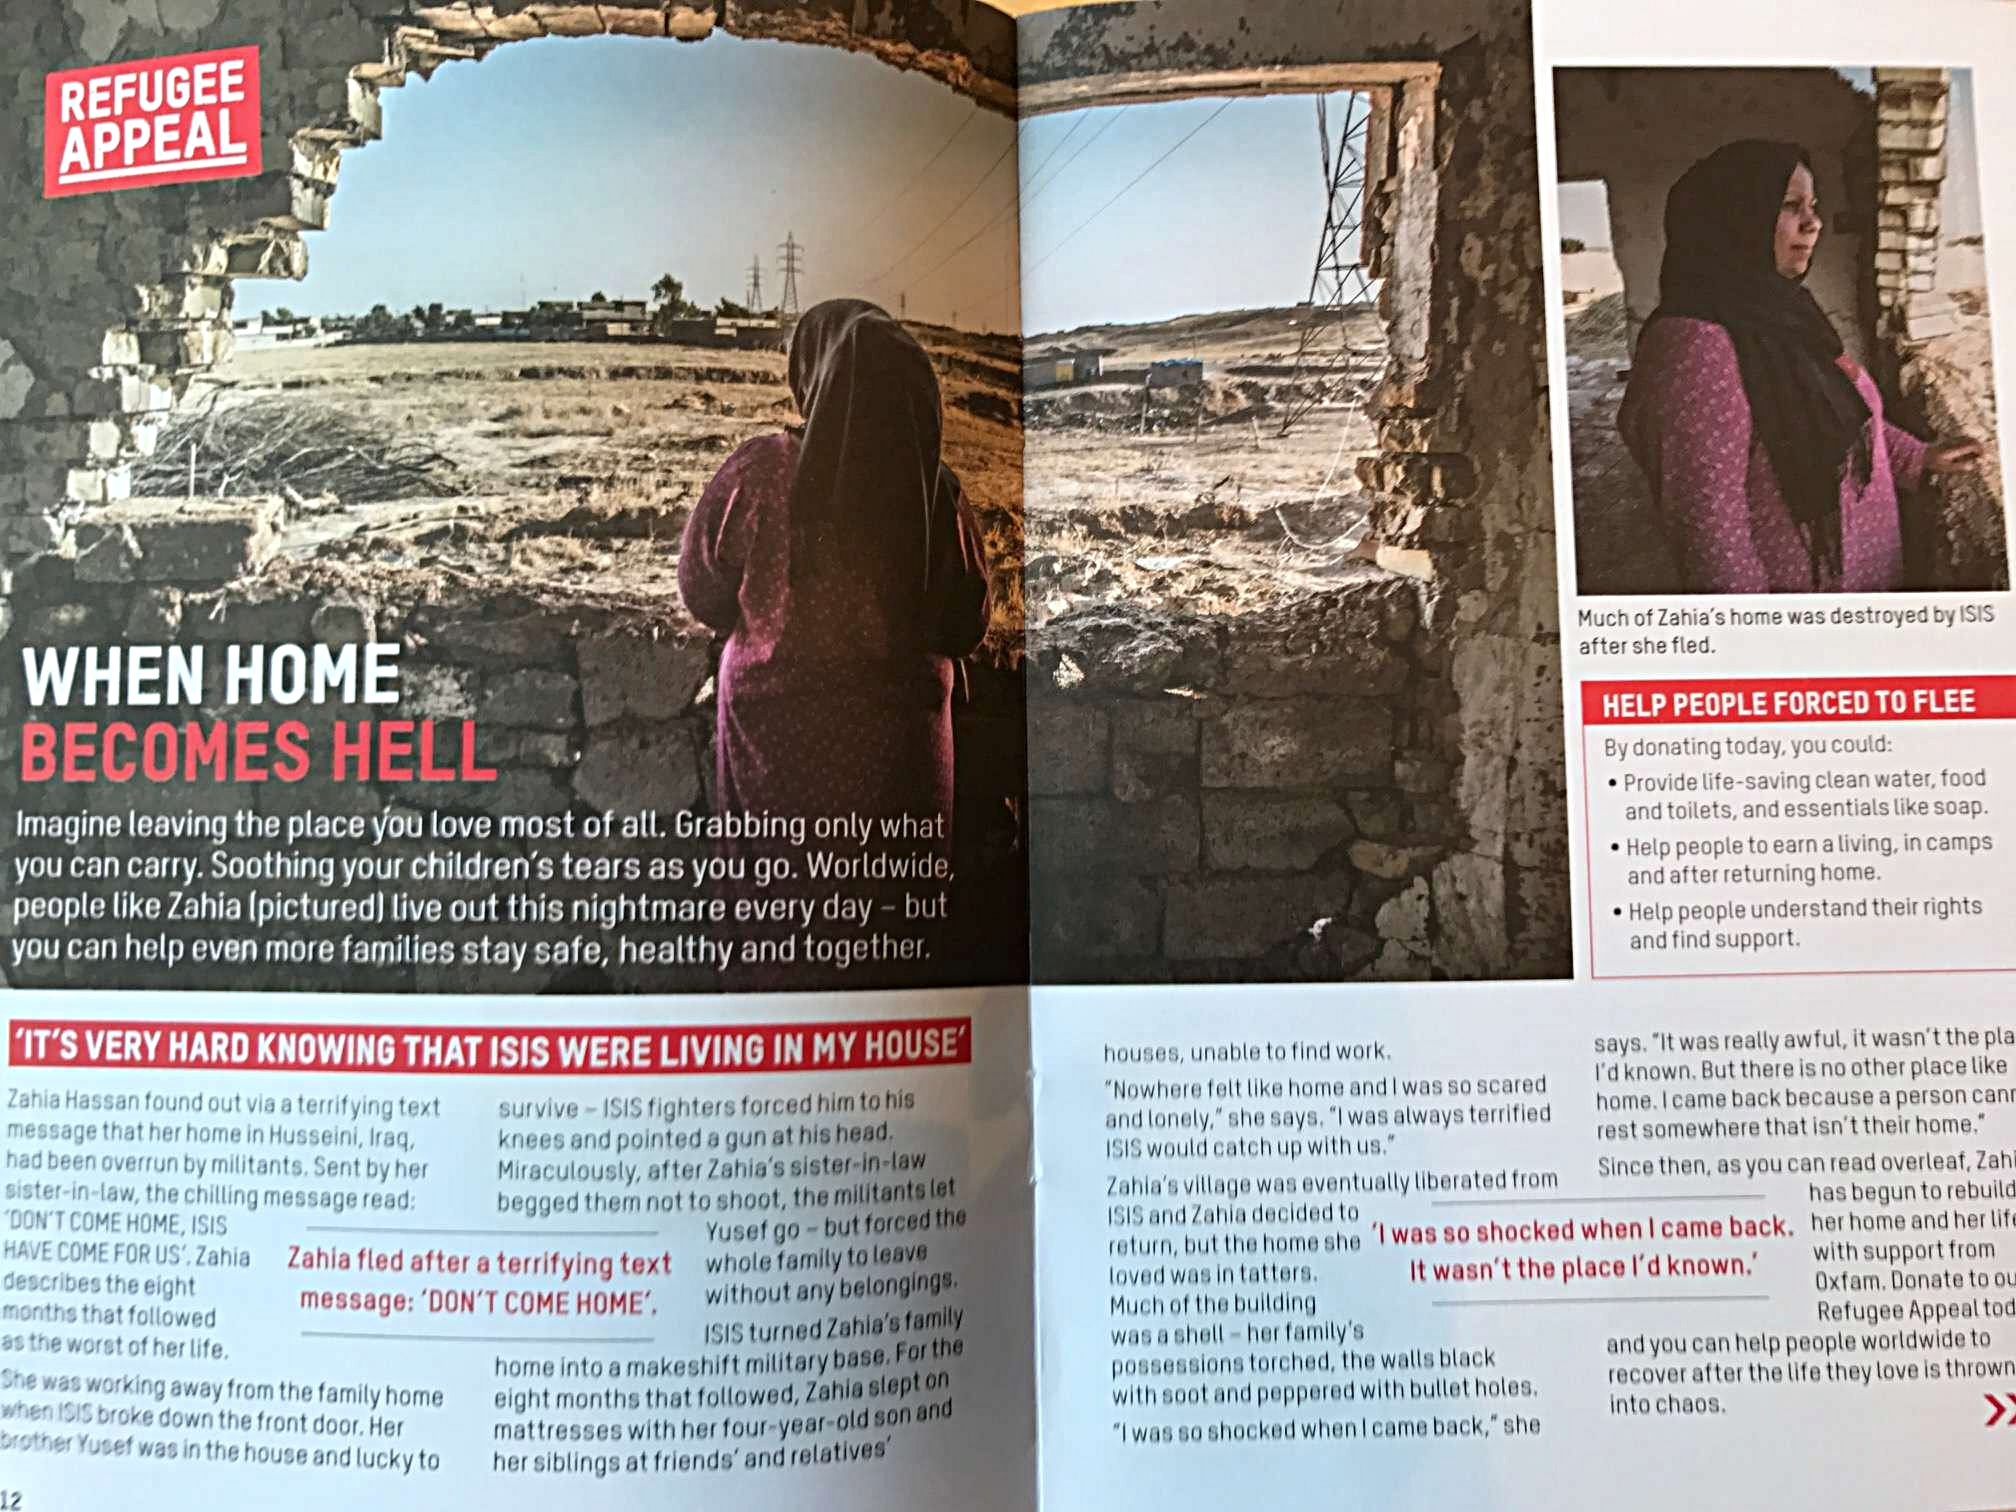 A cash appeal from Autumn 2016, focused on the experiences of people fleeing in Iraq.